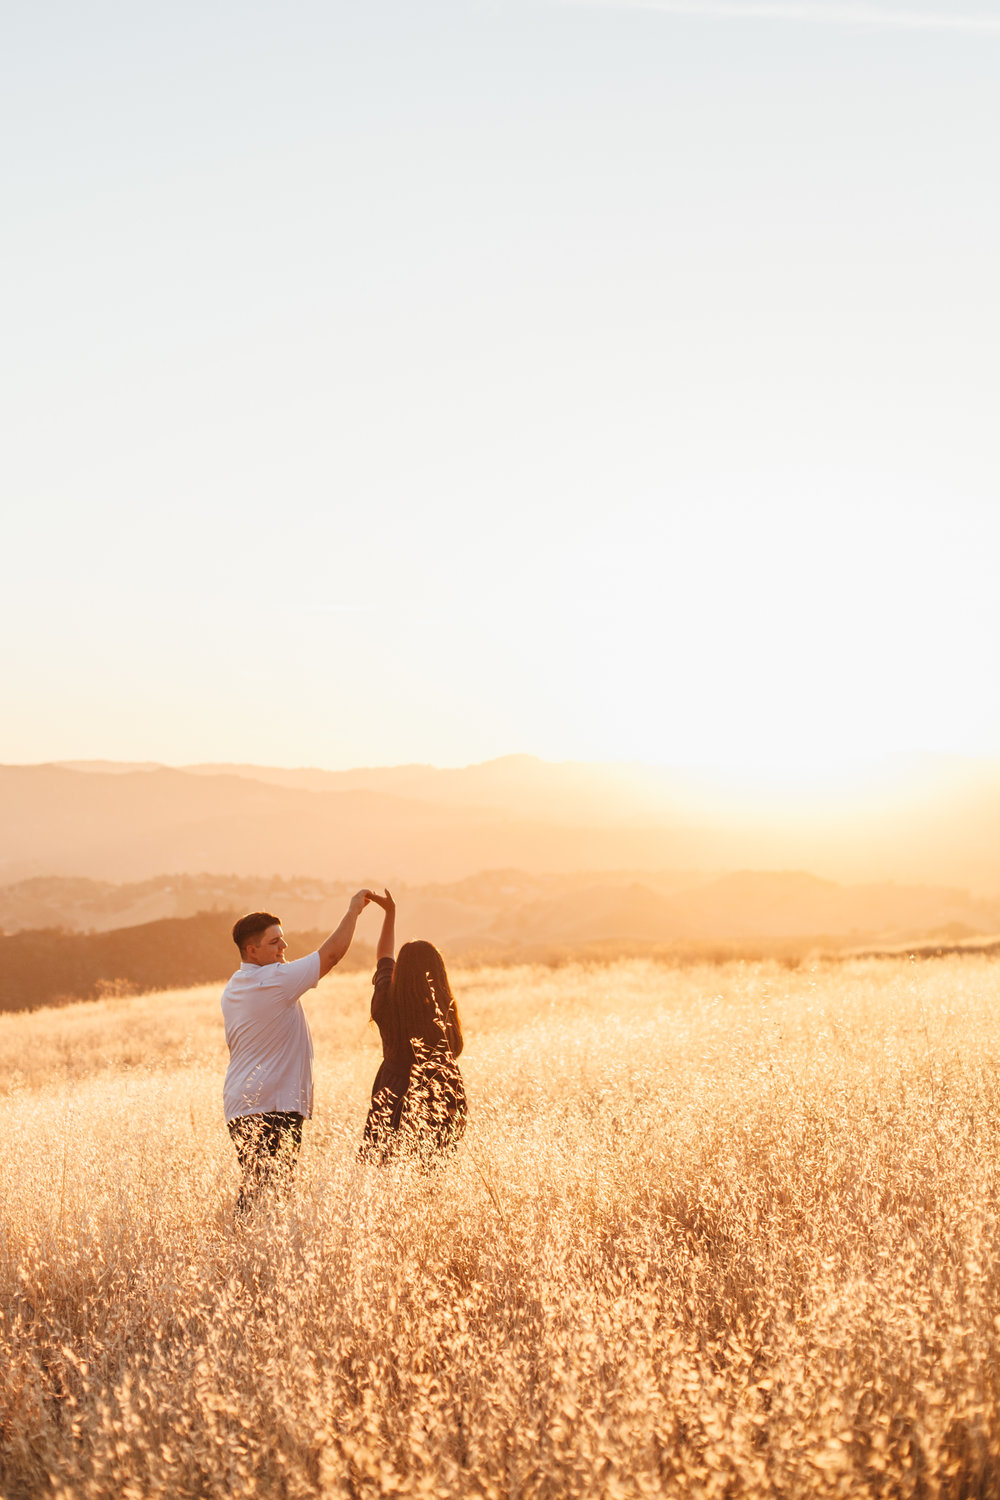 chris-diana-outdoor-engagement-session-in-walnut-creek-california-20